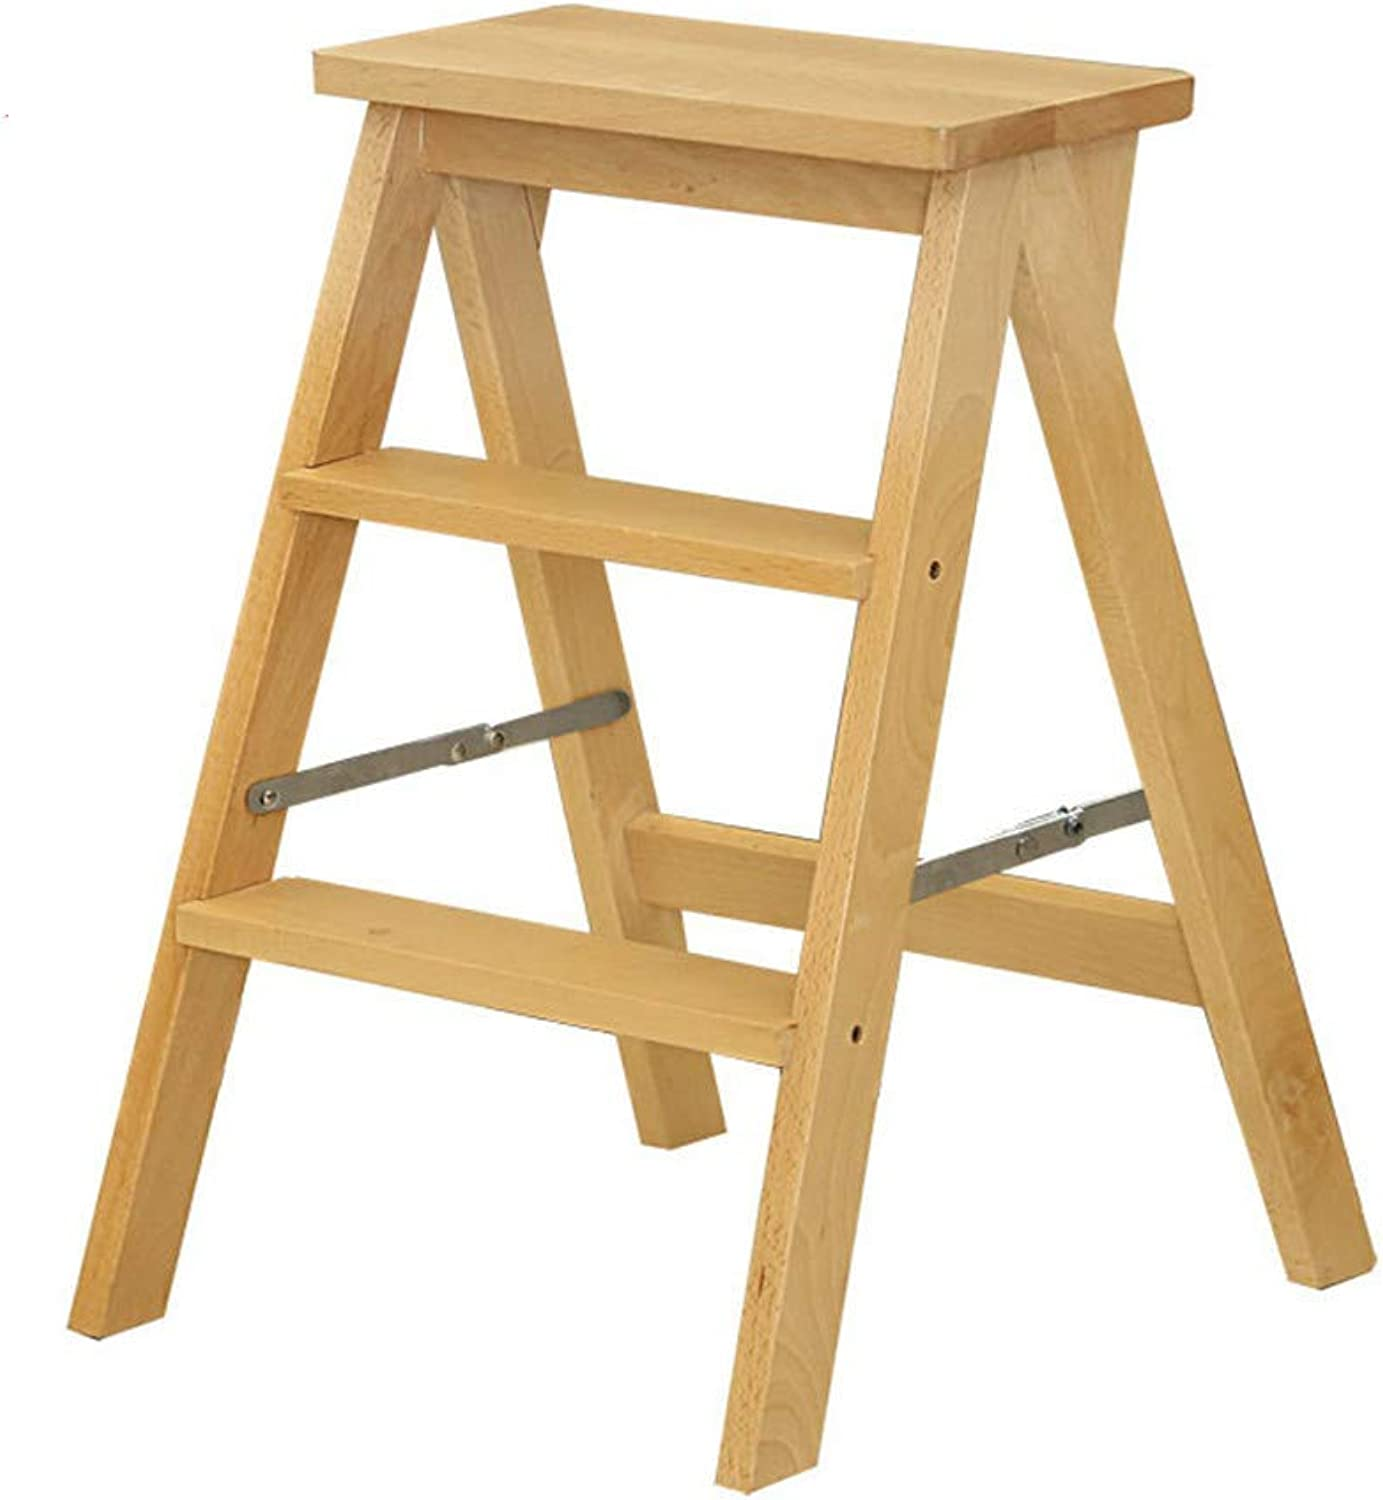 NN Step Stool - Solid Step Stool Portable Non-Slip Pedal Home Step Stool Non-Slip Multi-Function Stairs Foldable Step Stool (color   Brown)